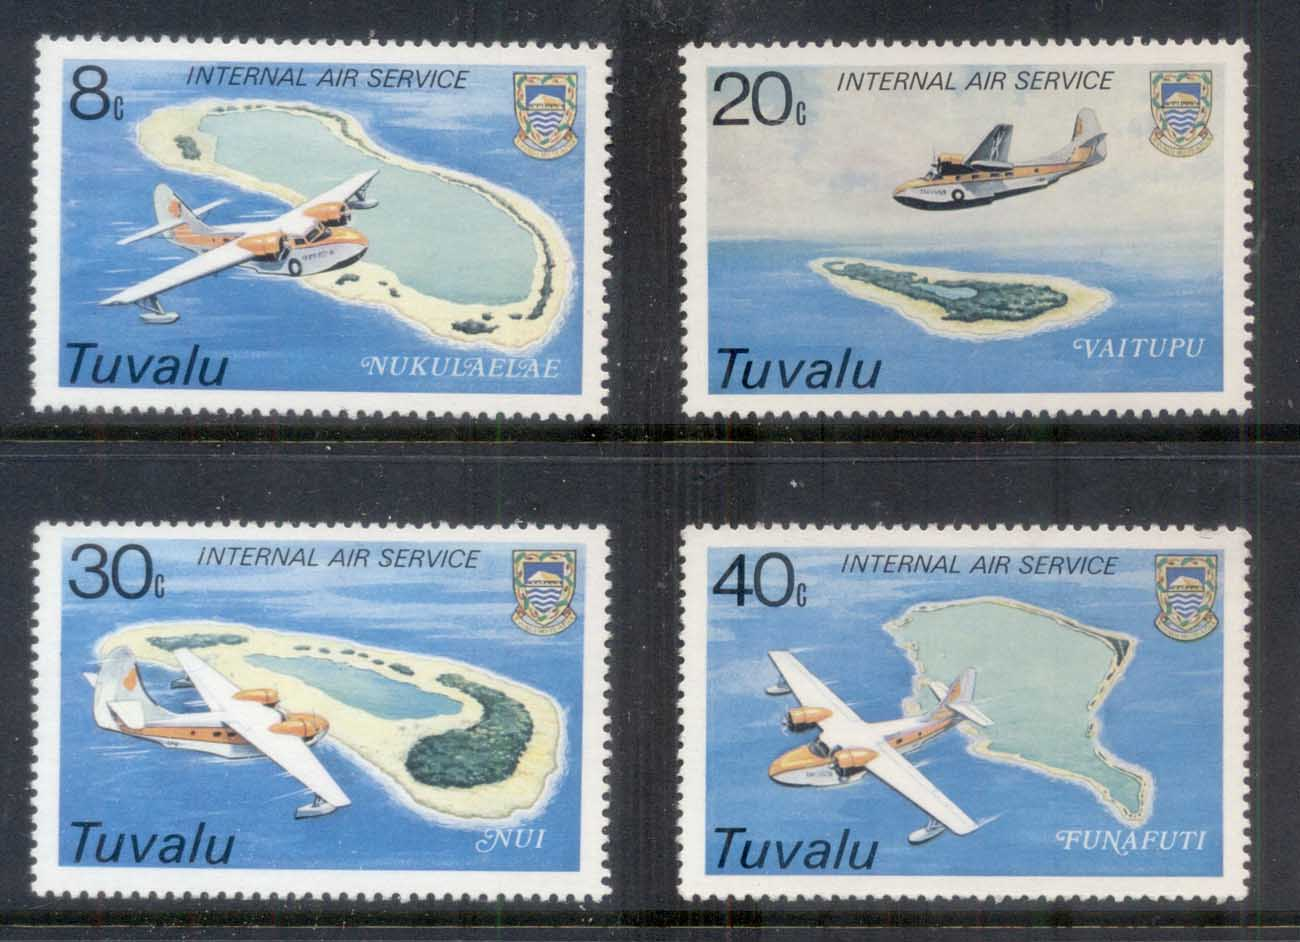 Tuvalu 1979 Inauguration of Internal Air Service MUH